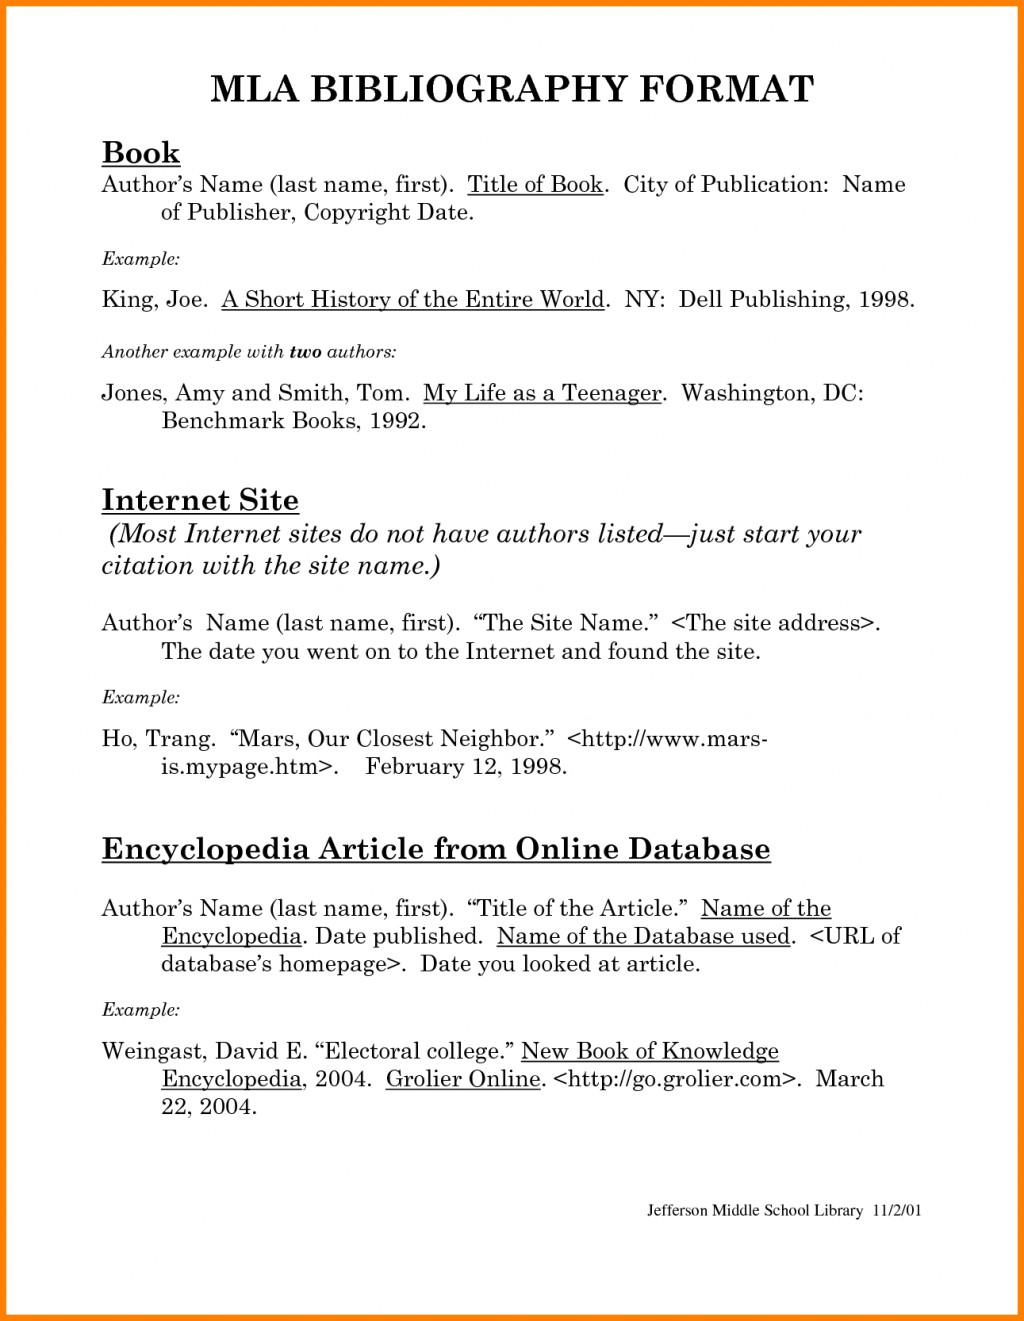 003 Research Paper Mla Citation Striking Example Format Encyclopedia Article Book Purdue Owl Large